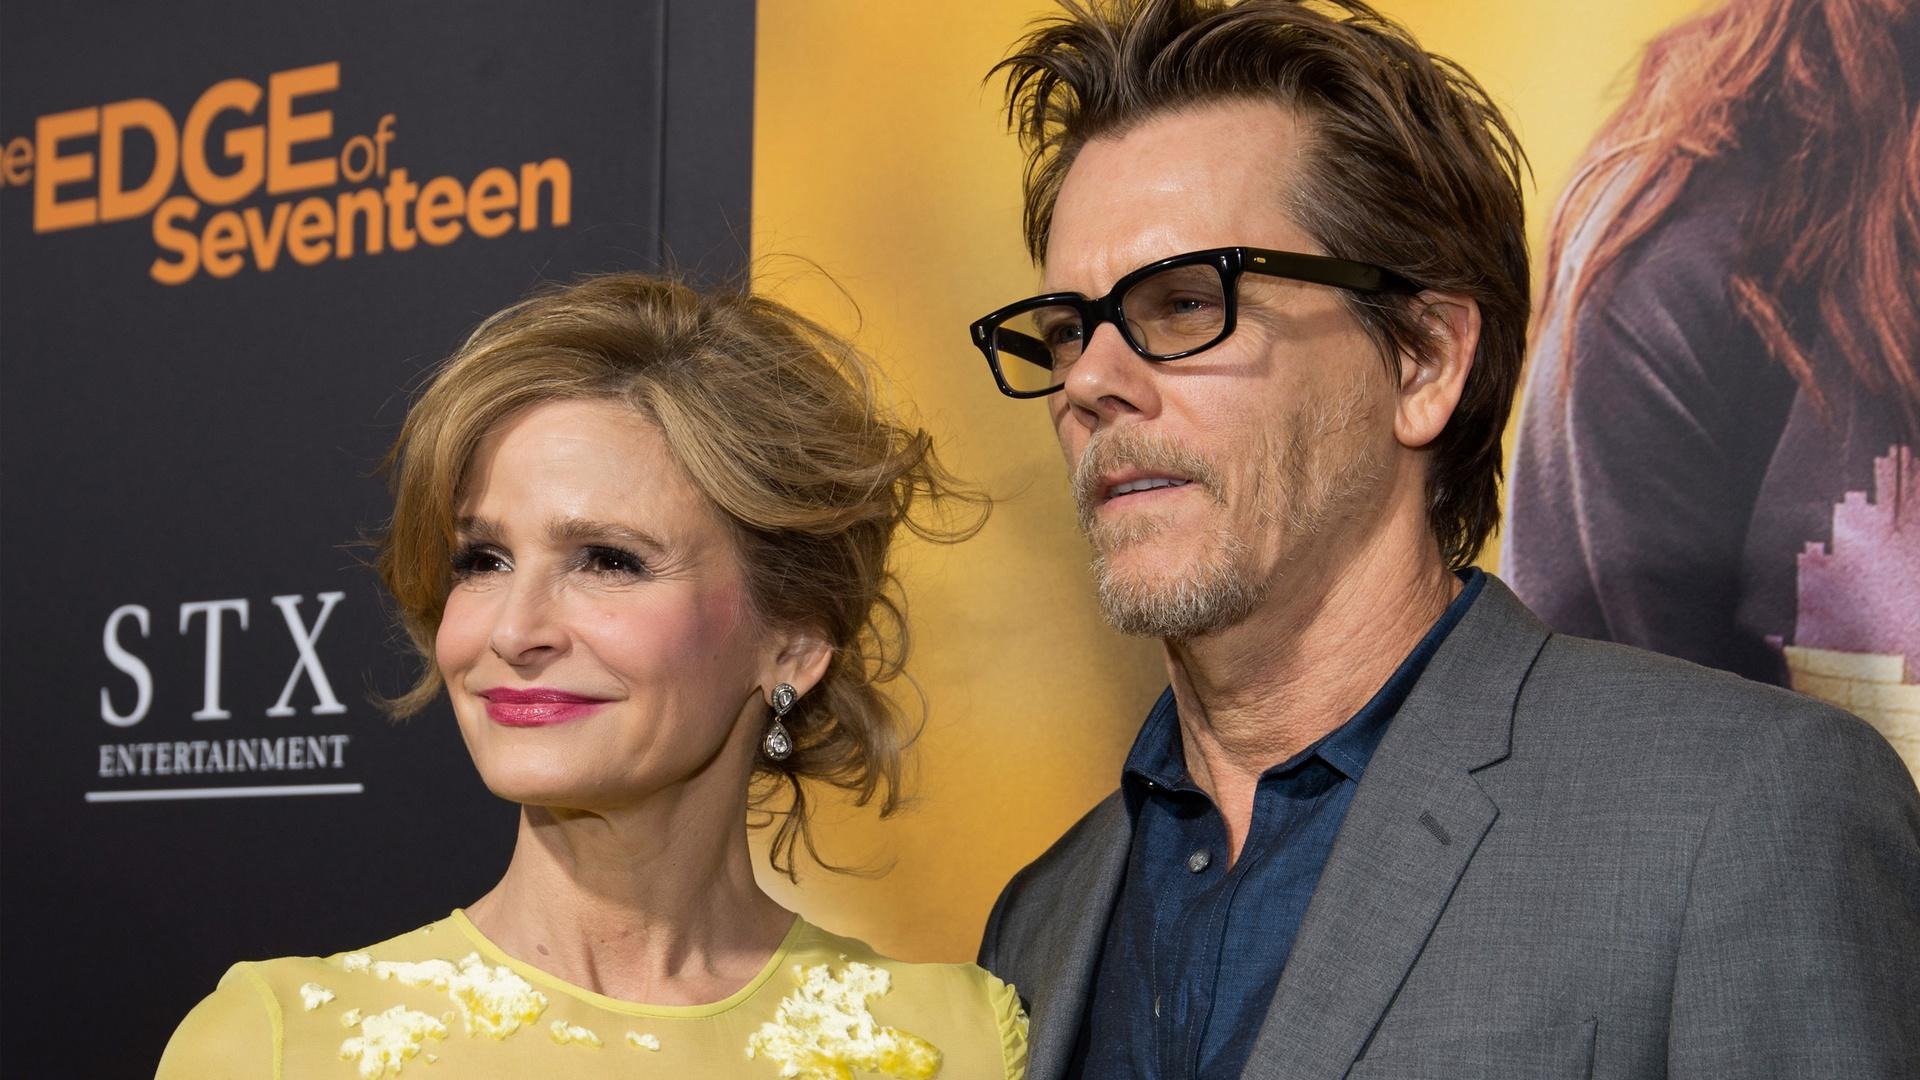 Kevin Bacon And Kyra Sedgwick's Style Through The Years, In Photos